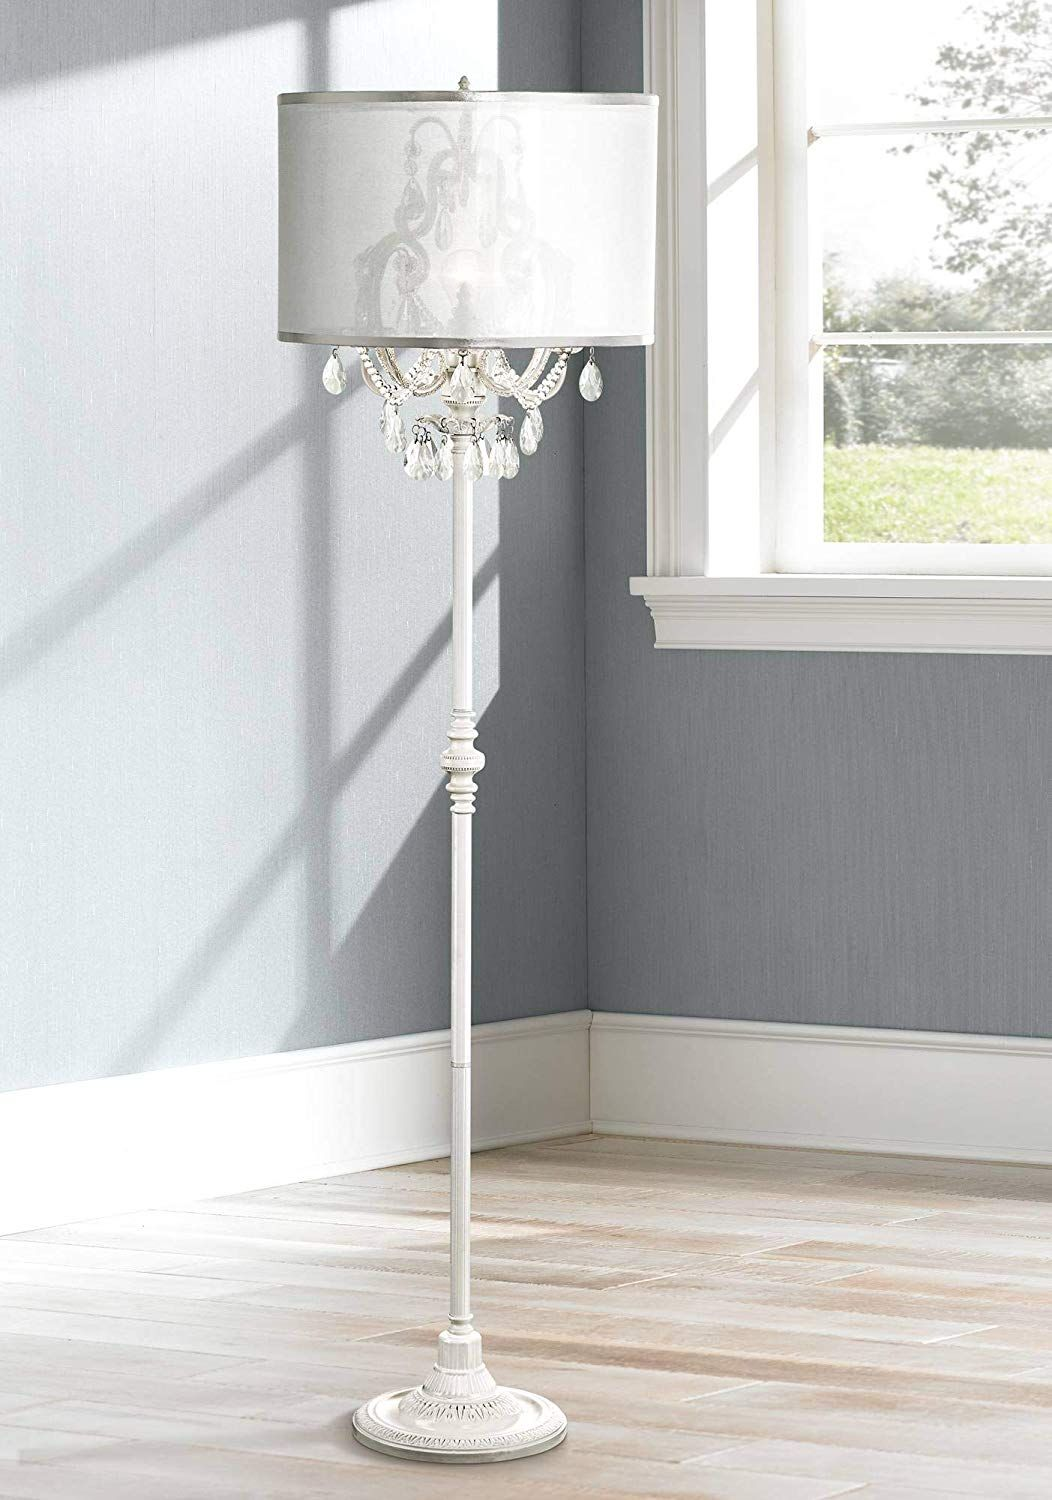 Ciara Shabby Chic Floor Lamp Antique White Chandelier Style